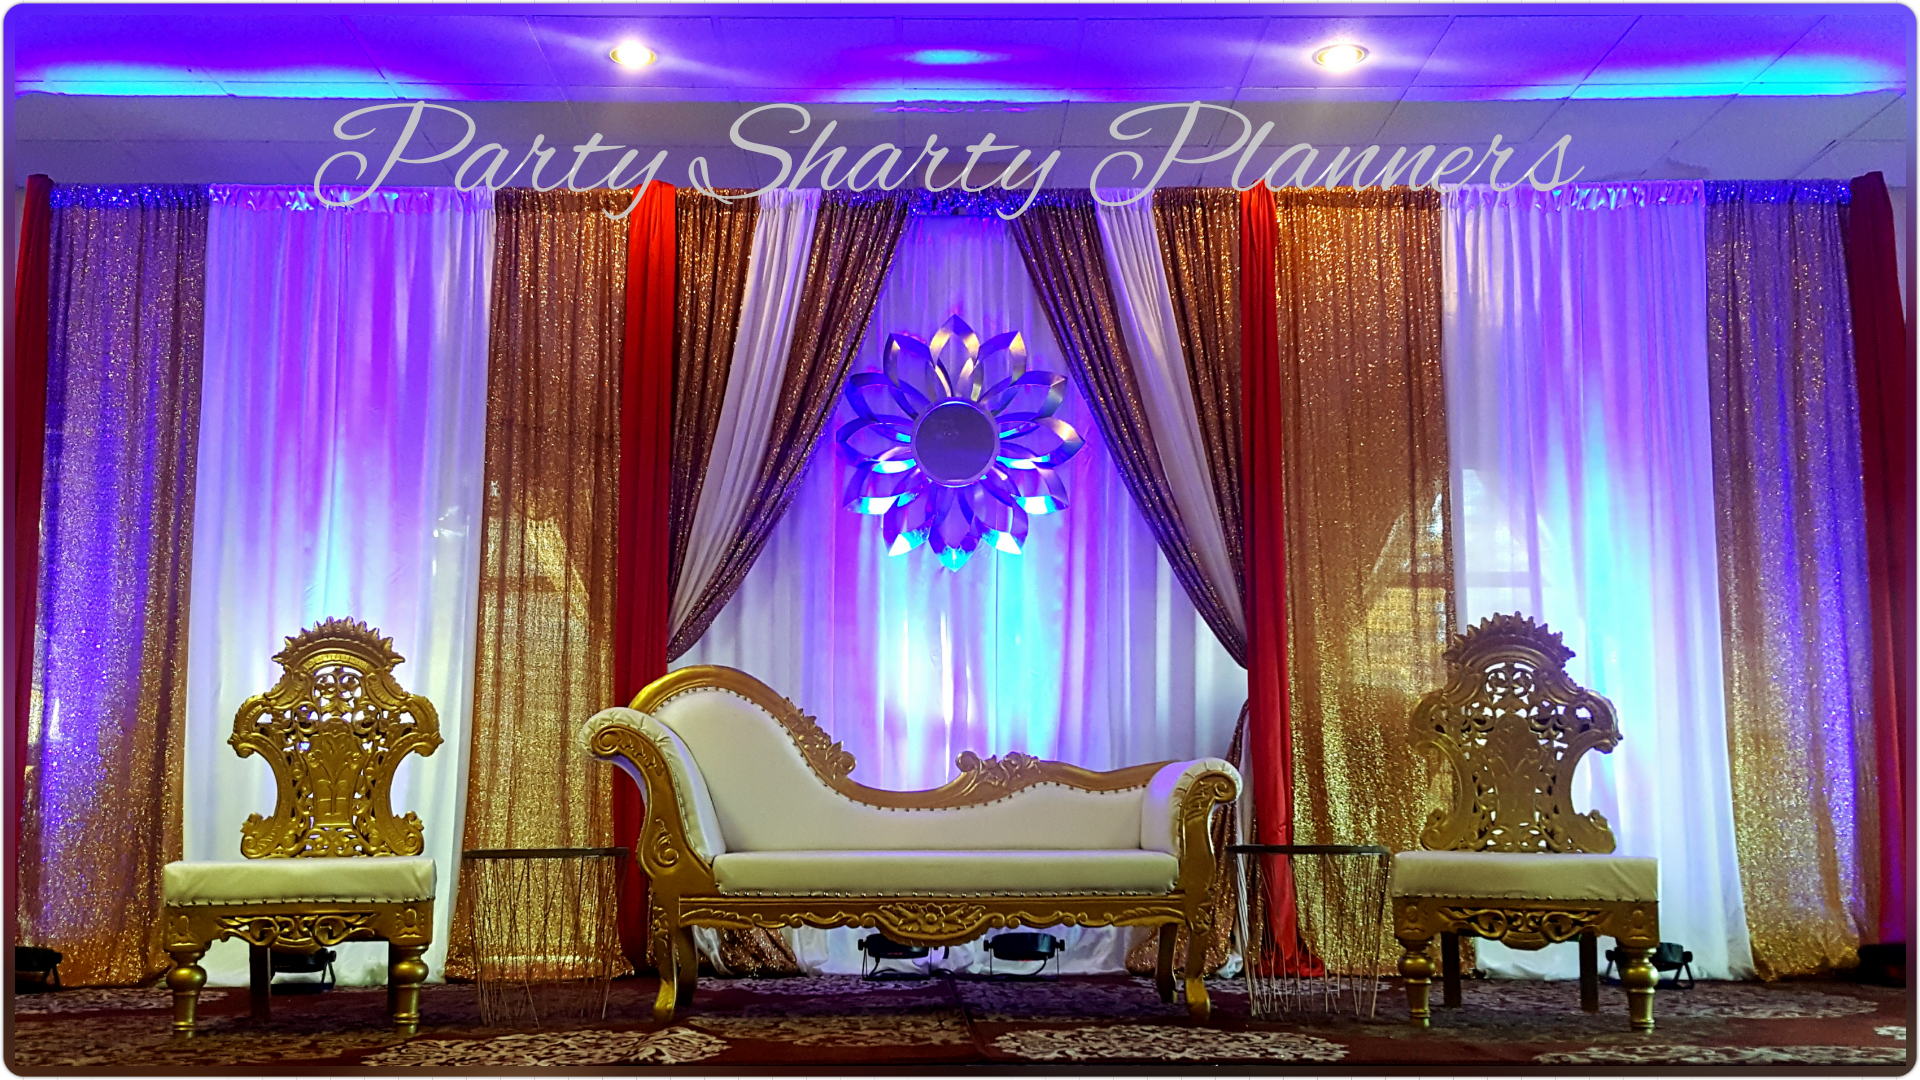 Wedding Backdrop By Party Sharty Planners in CT (With images ...